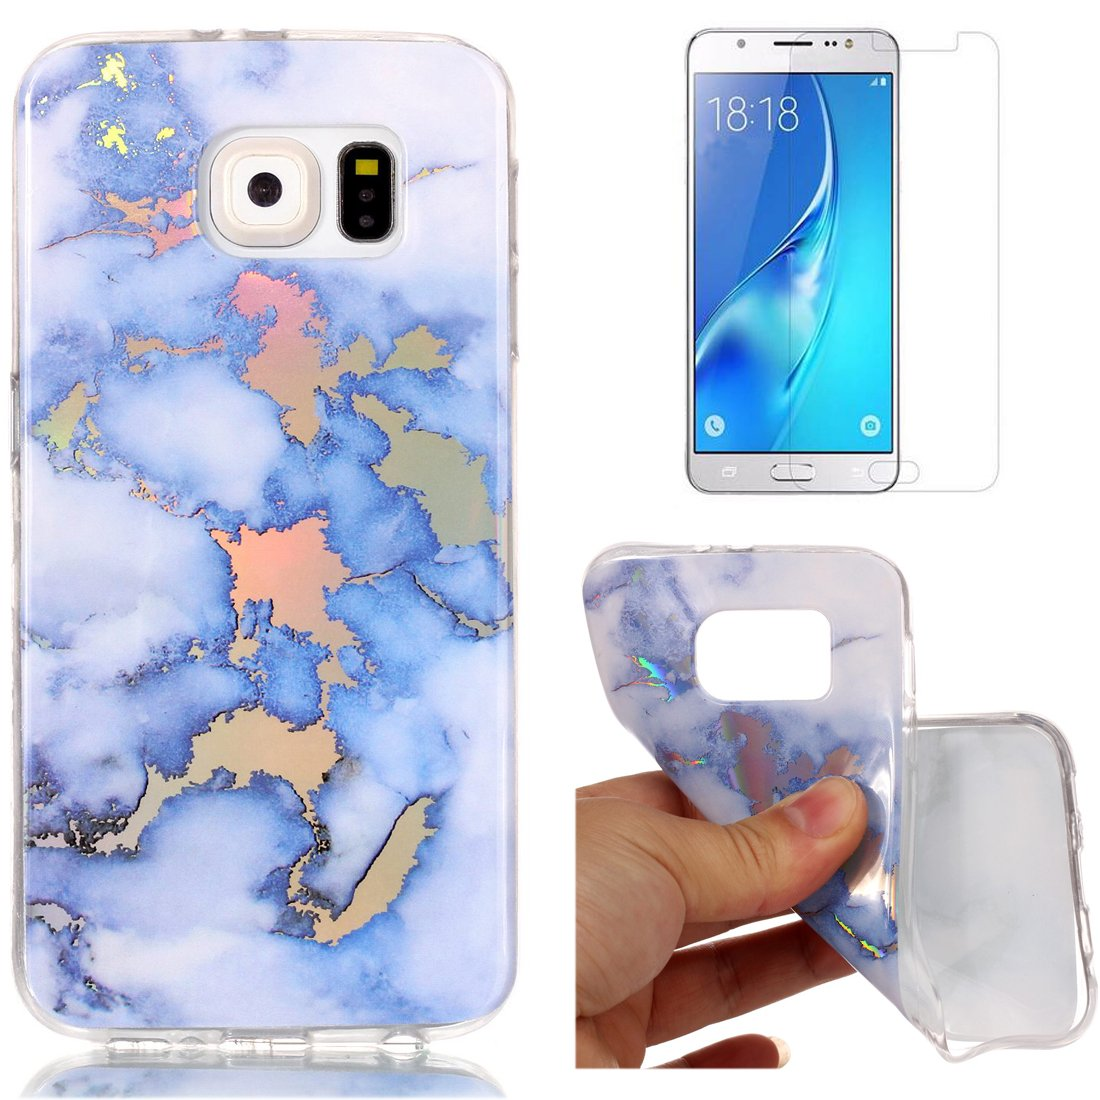 For Samsung Galaxy S6 Marble Case Blue and Gray,OYIME Unique Luxury Glitter Colorful Plating Pattern Skin Design Clear Silicone Rubber Slim Fit Ultra Thin Protective Back Cover Glossy Soft Gel TPU Shell Shockproof Drop Protection Protective Transparent Bum